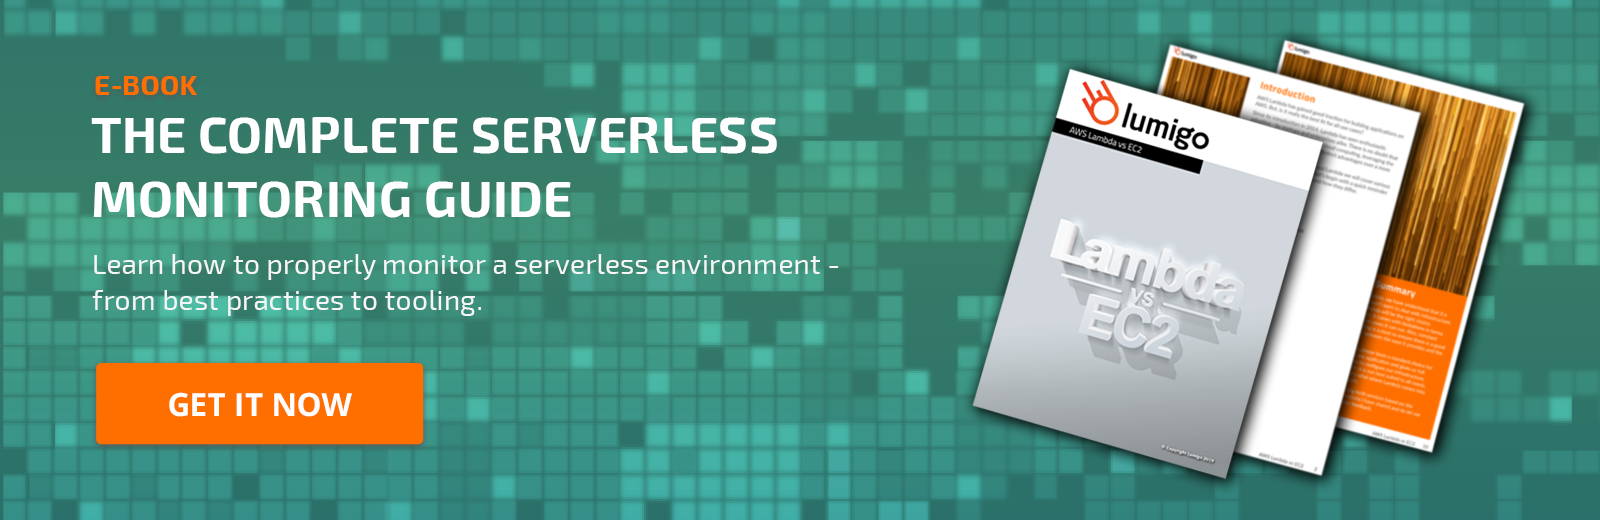 E-Book - Get our complete guide to serverless monitoring!